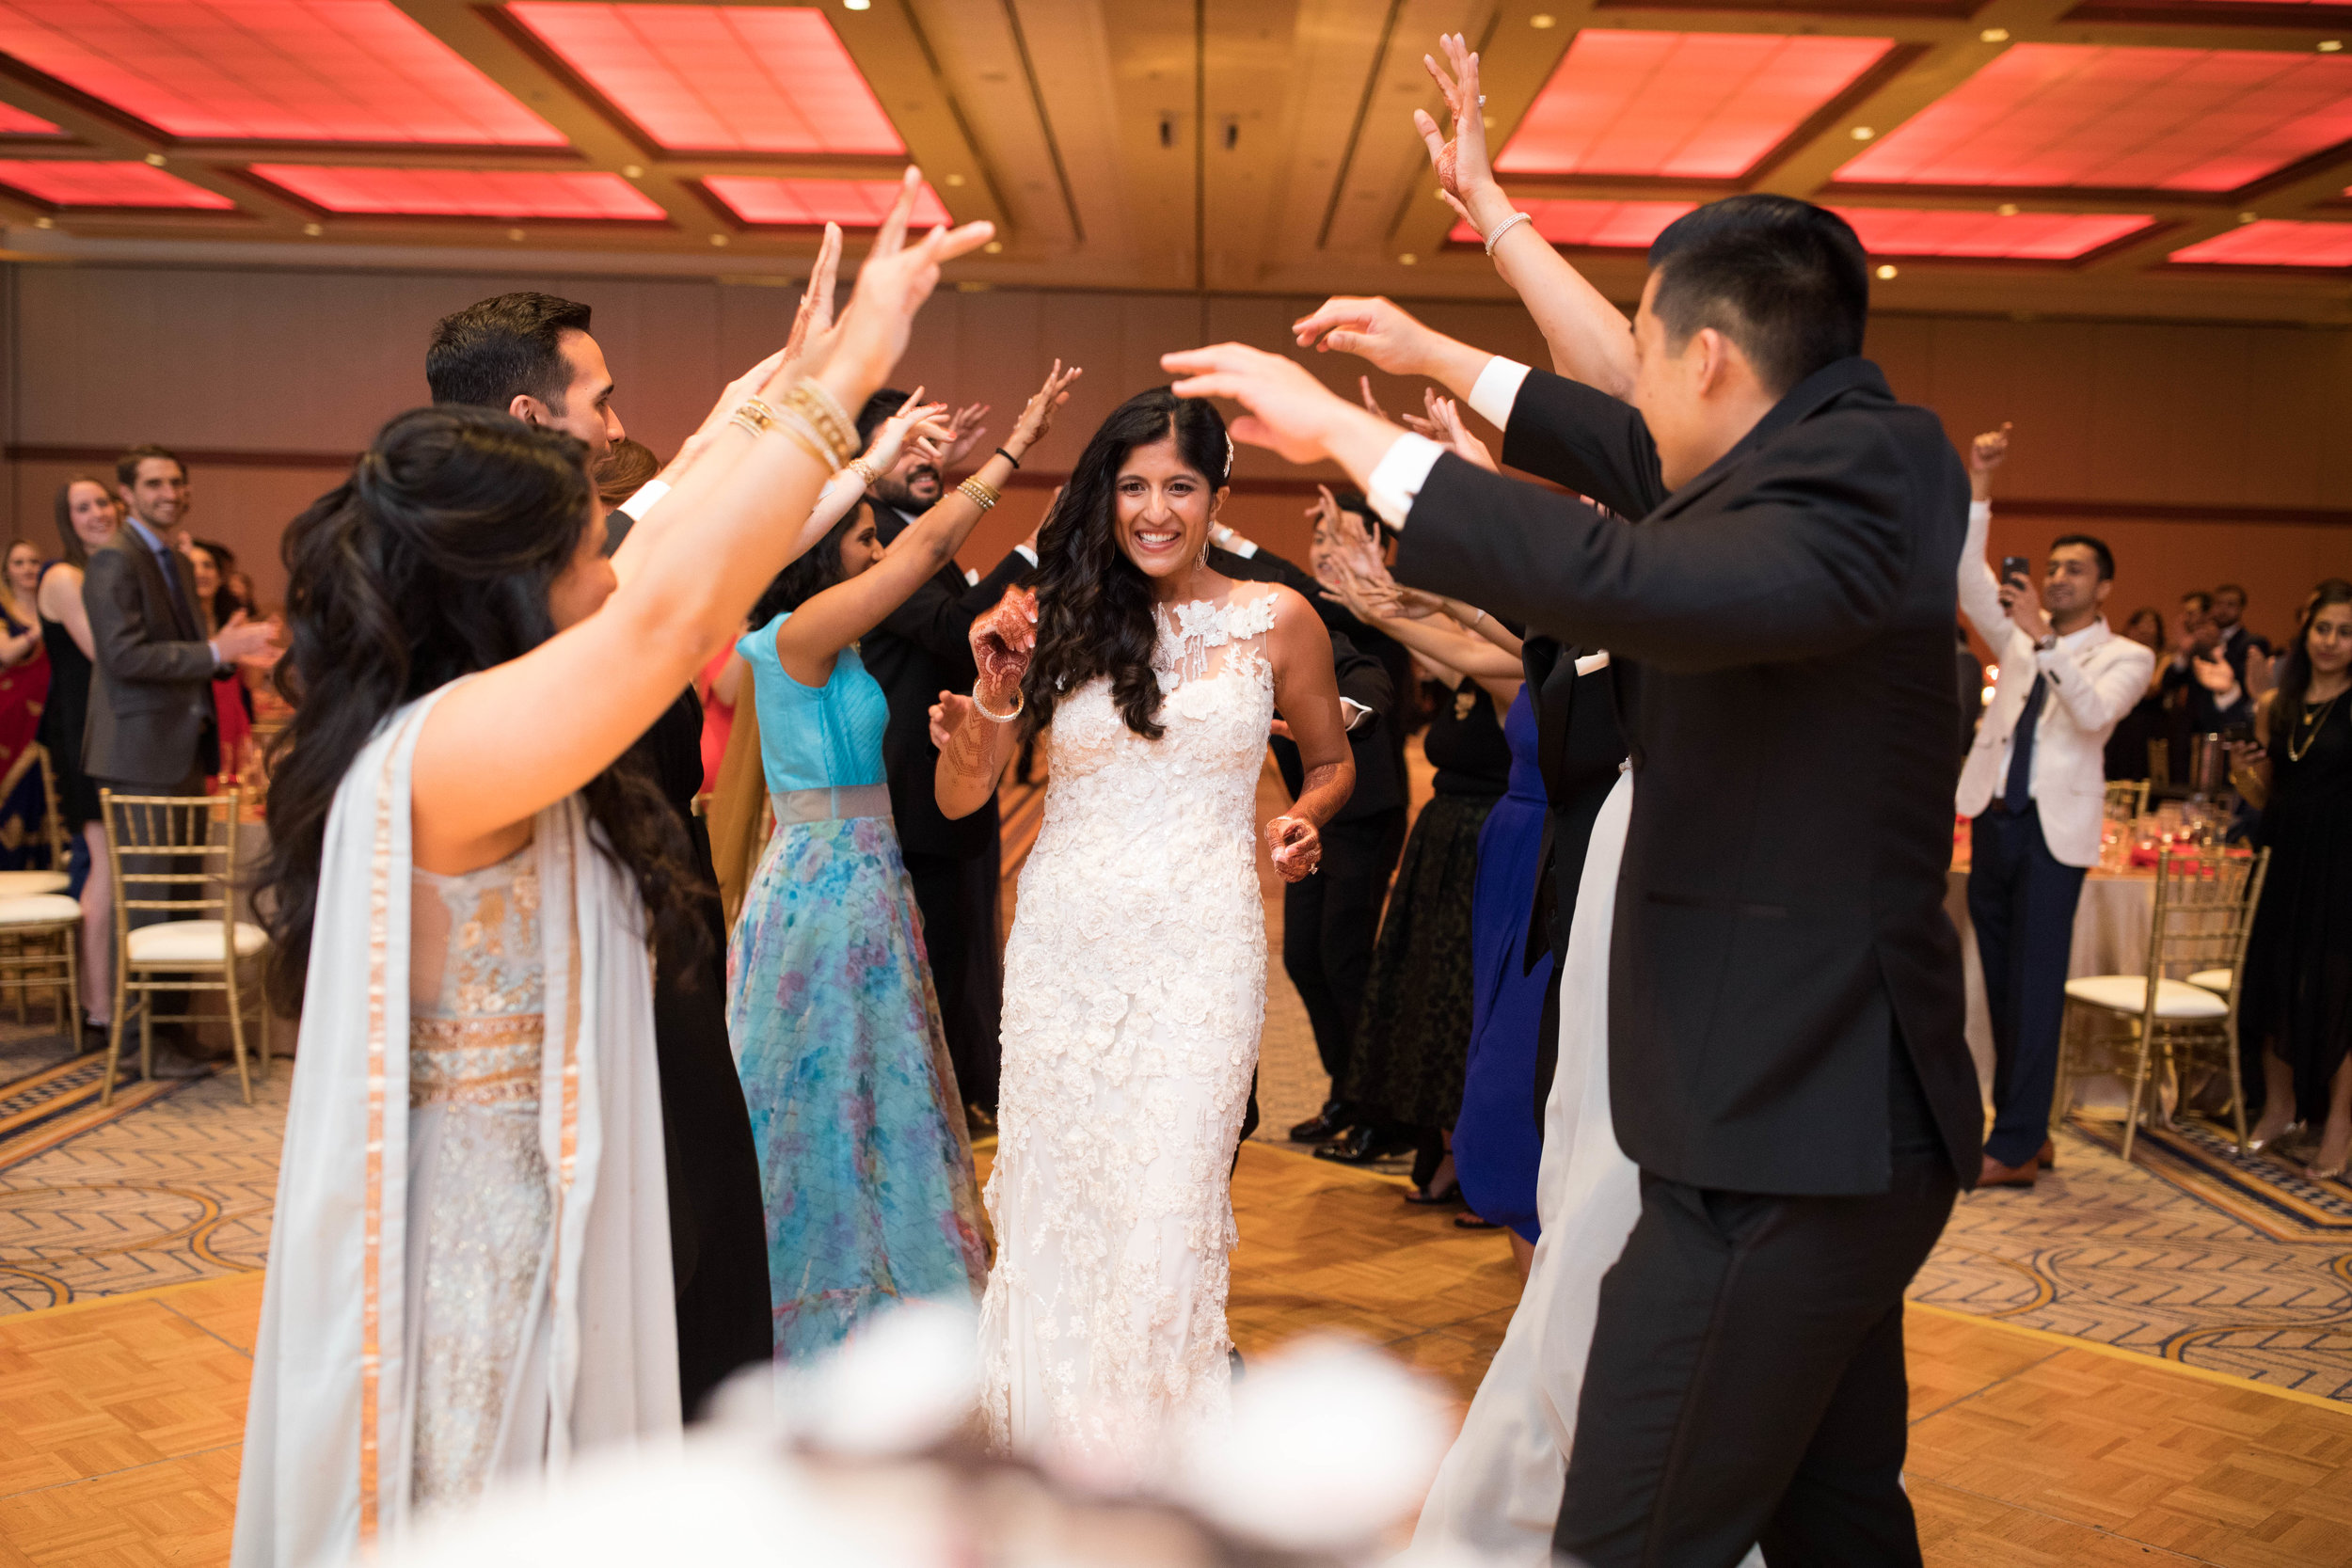 LeCapeWeddings - Chicago South Asian Wedding -118.jpg